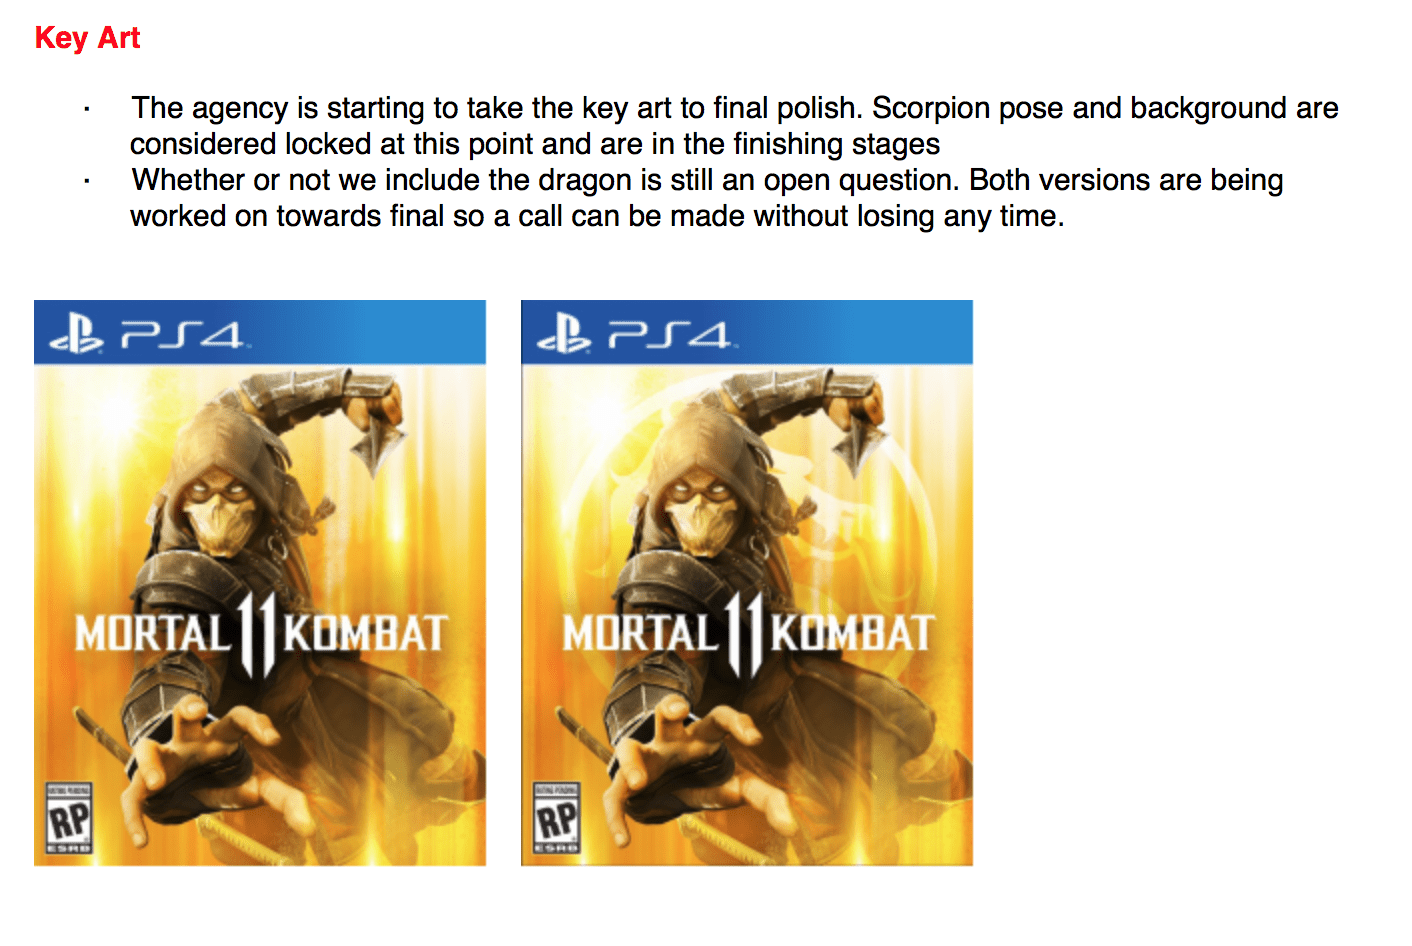 mortal kombat 11 box art 2 - New Mortal Kombat 11 Leaked Details - New Fighter Name, TV Series and More!